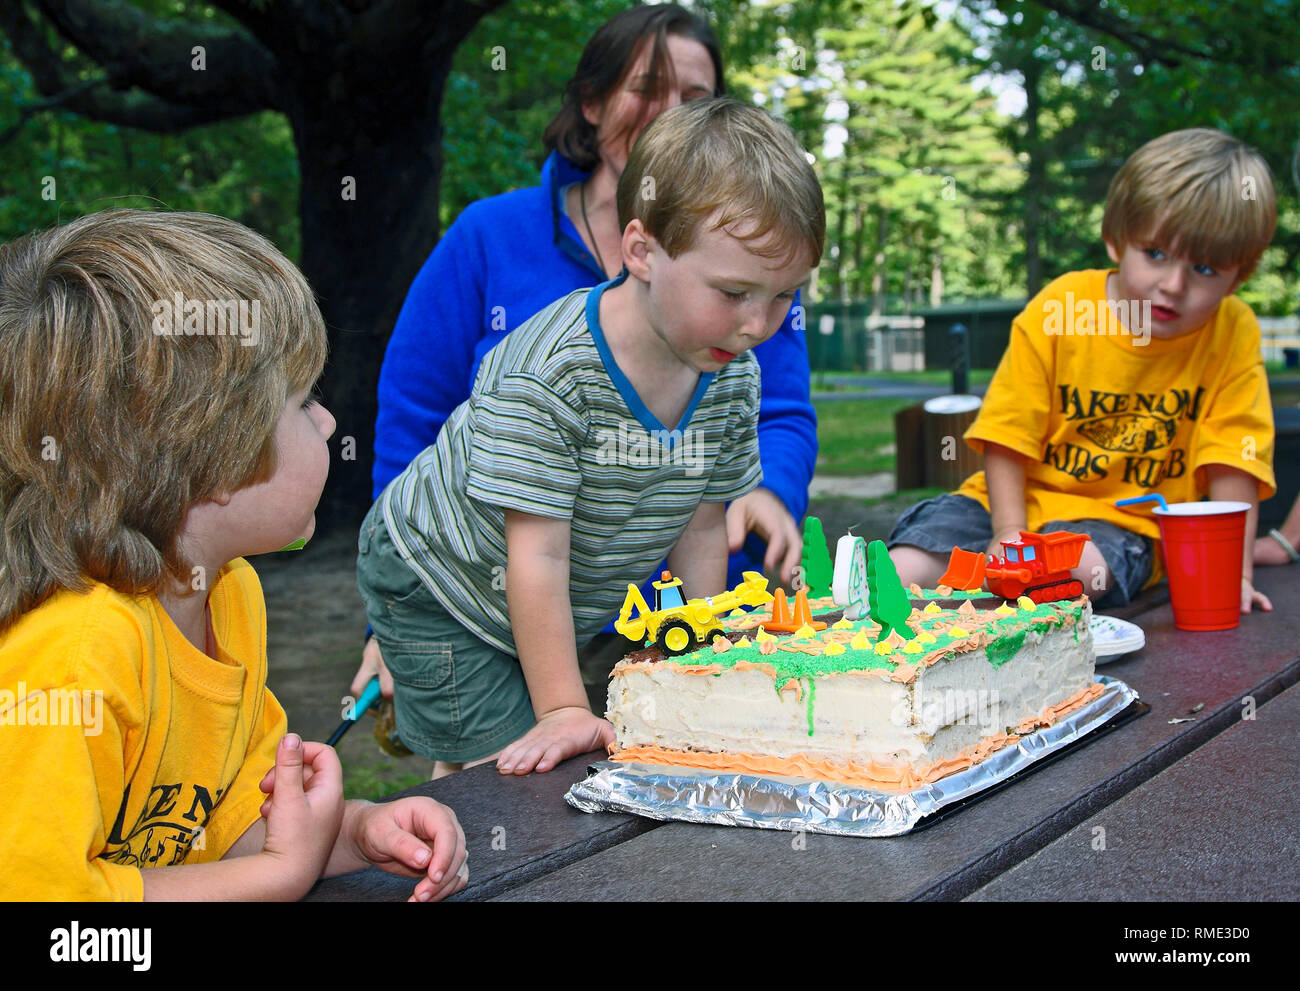 4 Year Old Boys Birthday Cake Truck Decorations Party Picnic Celebration Outdoors Dessert Fun Sweet Treat Food Summer Horizontal MR